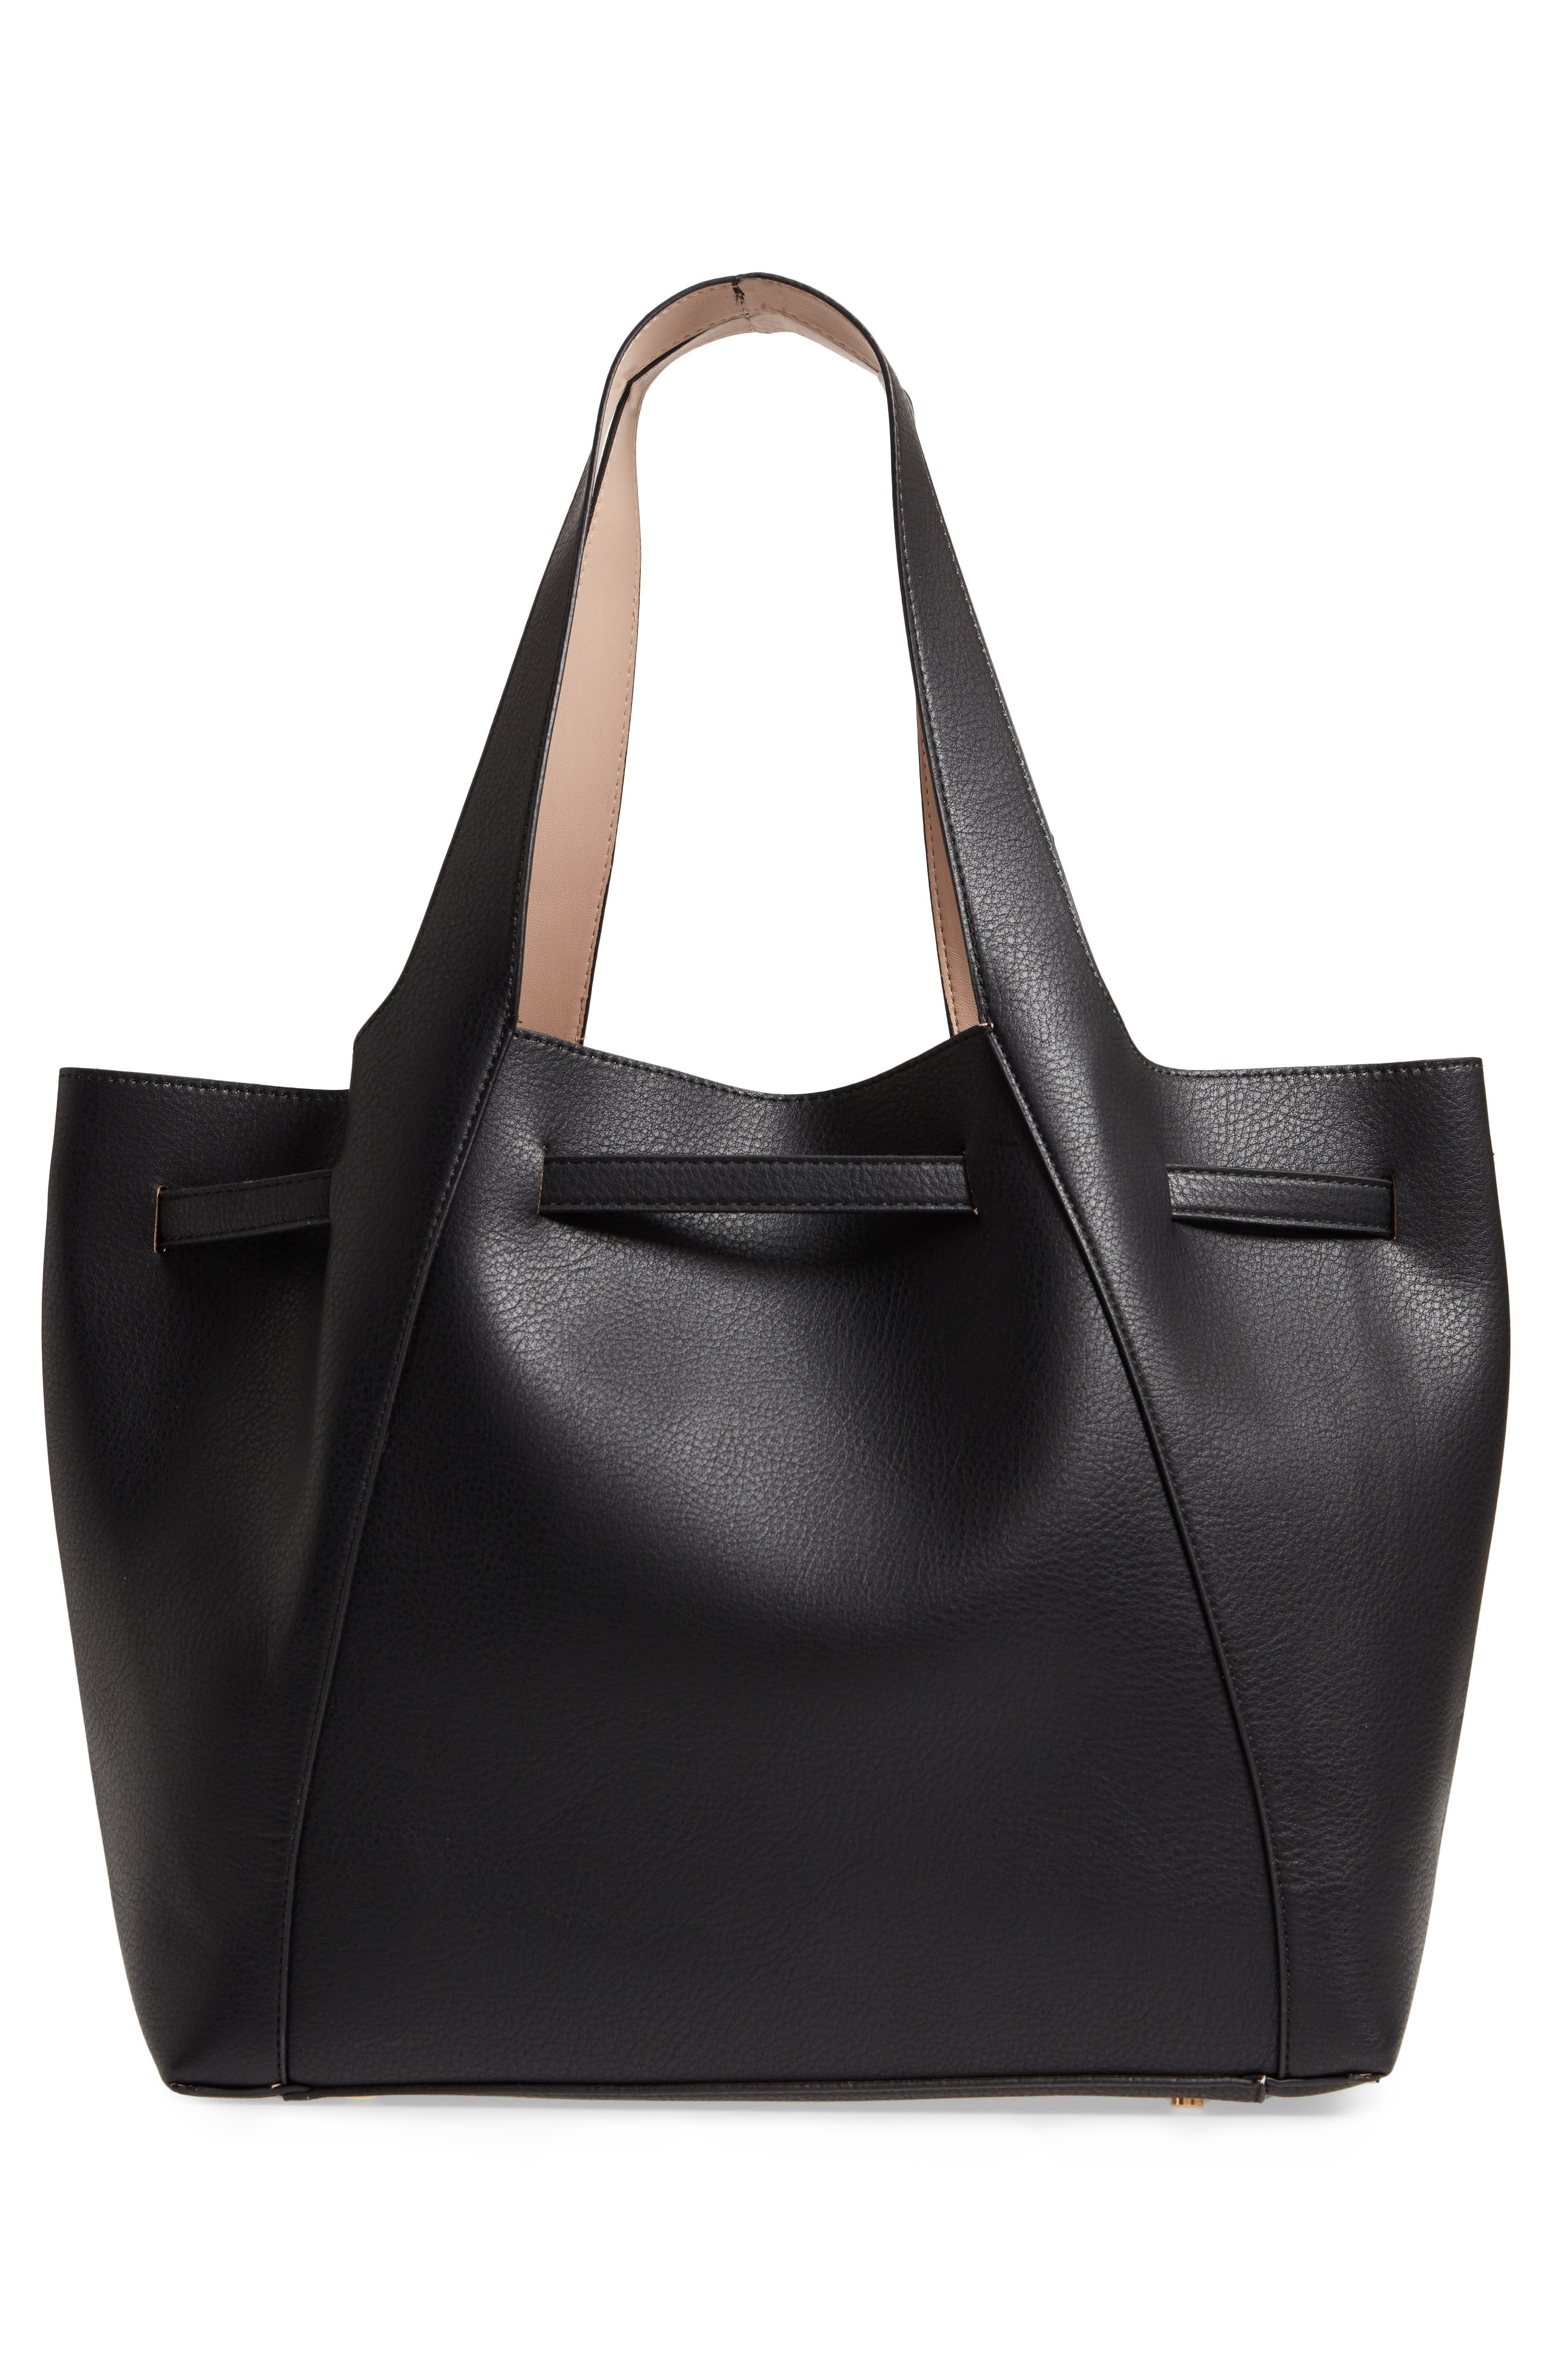 Keely Tote Bag,                             Alternate thumbnail 3, color,                             Black